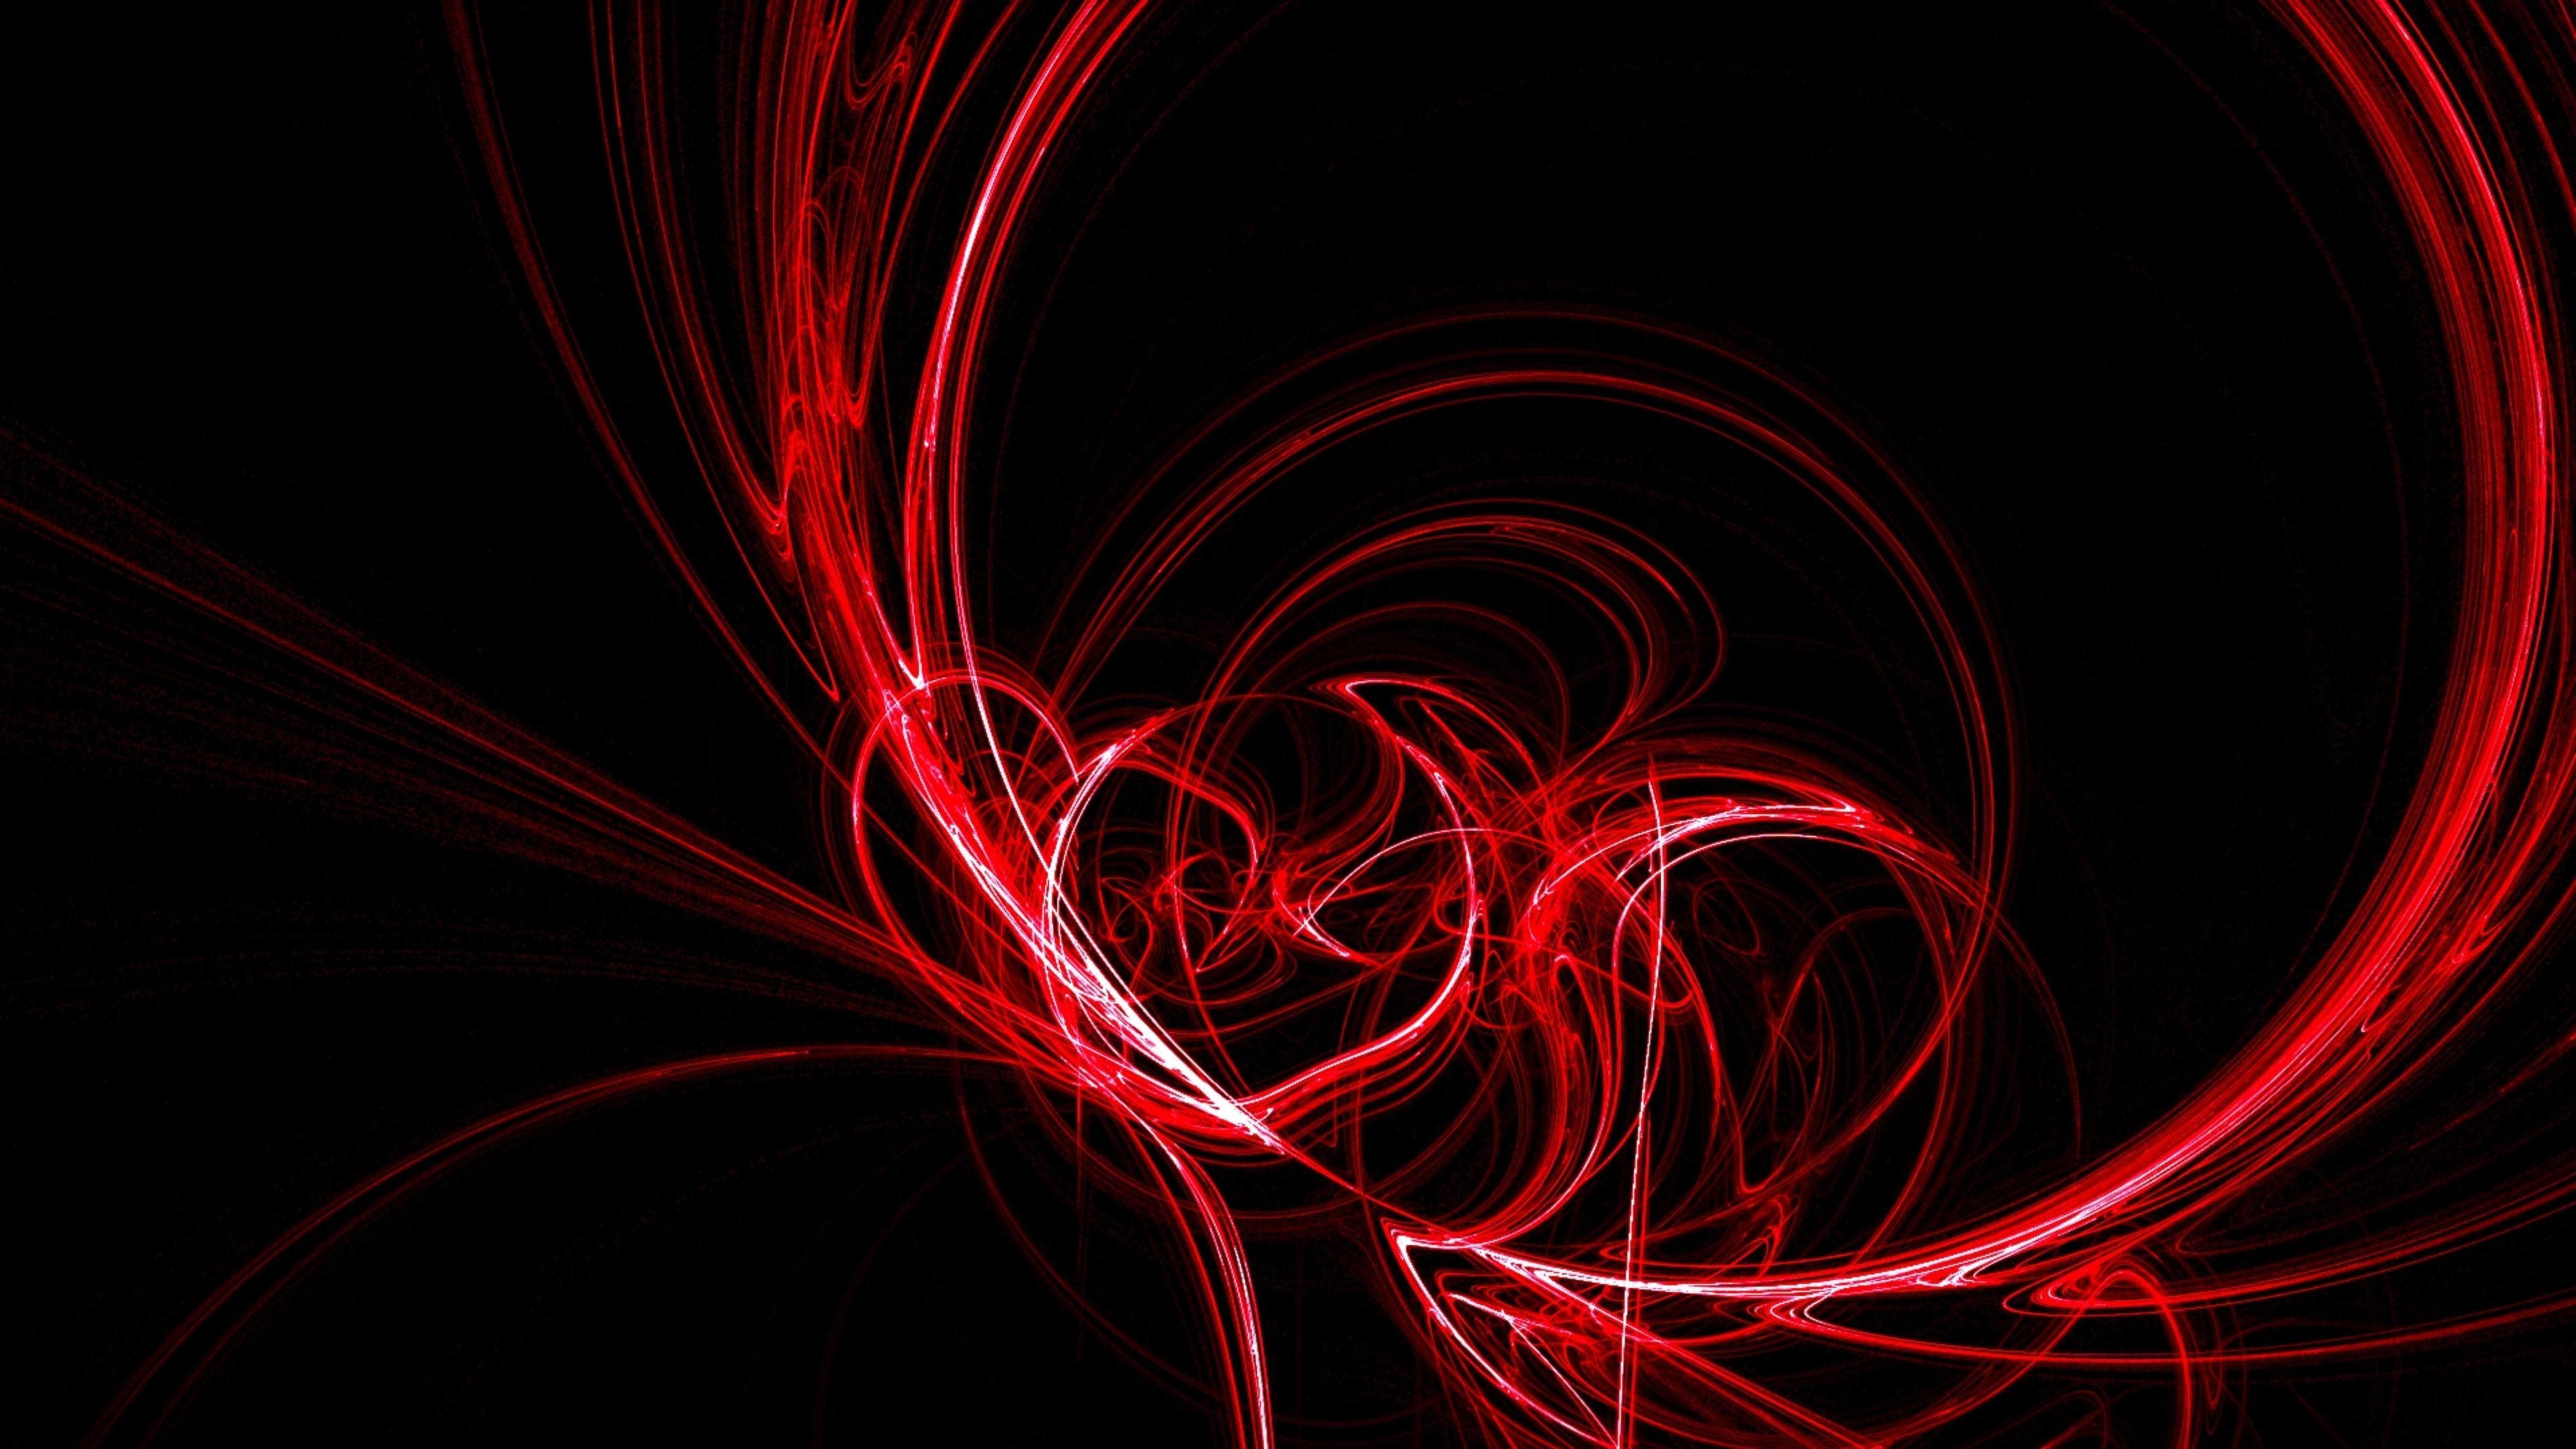 Black And Red Swirl Abstract 4k Wallpapers Free 4k Wallpaper Red And Black Wallpaper Red Wallpaper Abstract Wallpaper